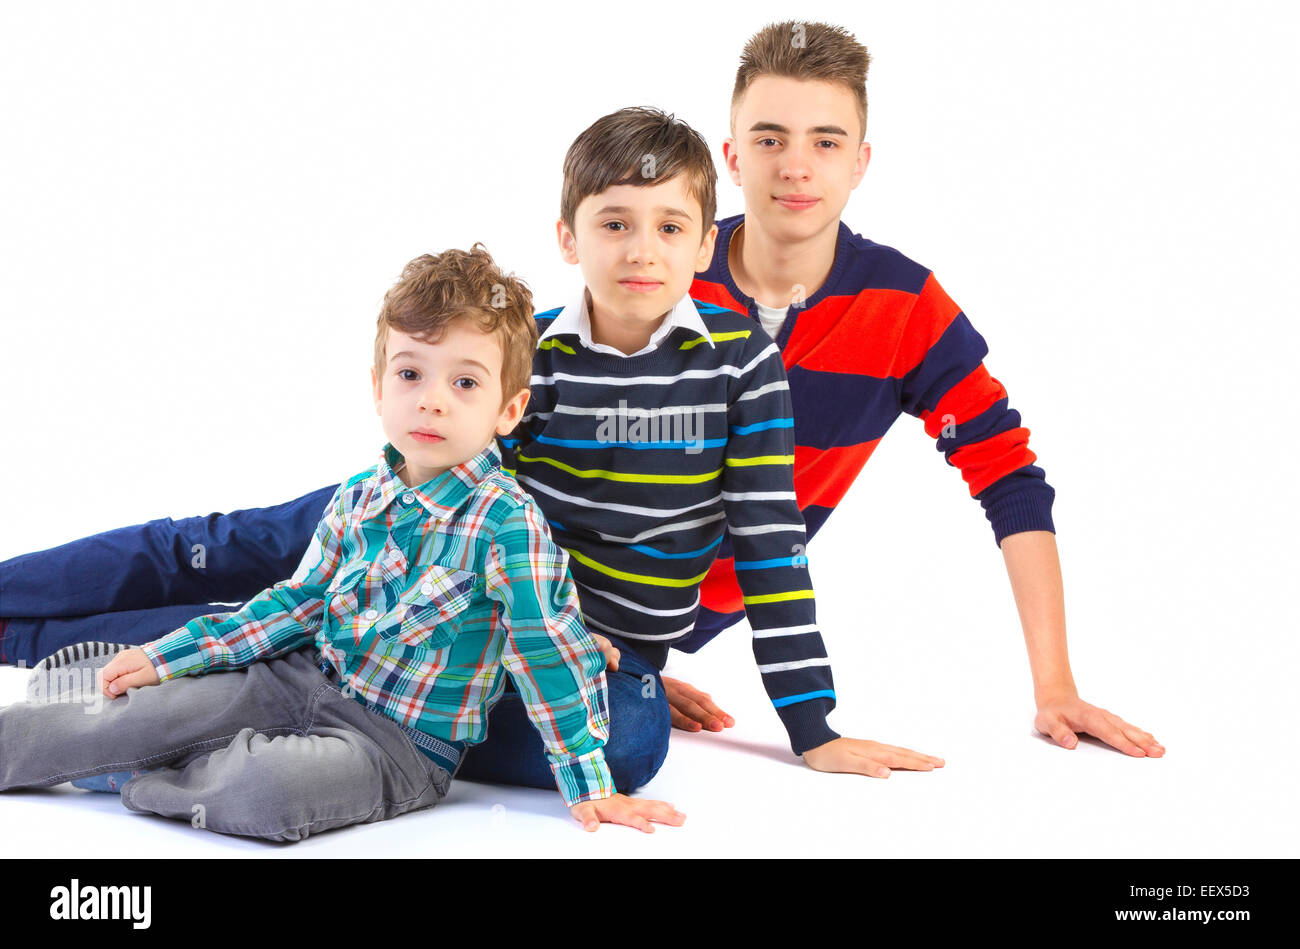 Shot studio with three brothers on white background - Stock Image